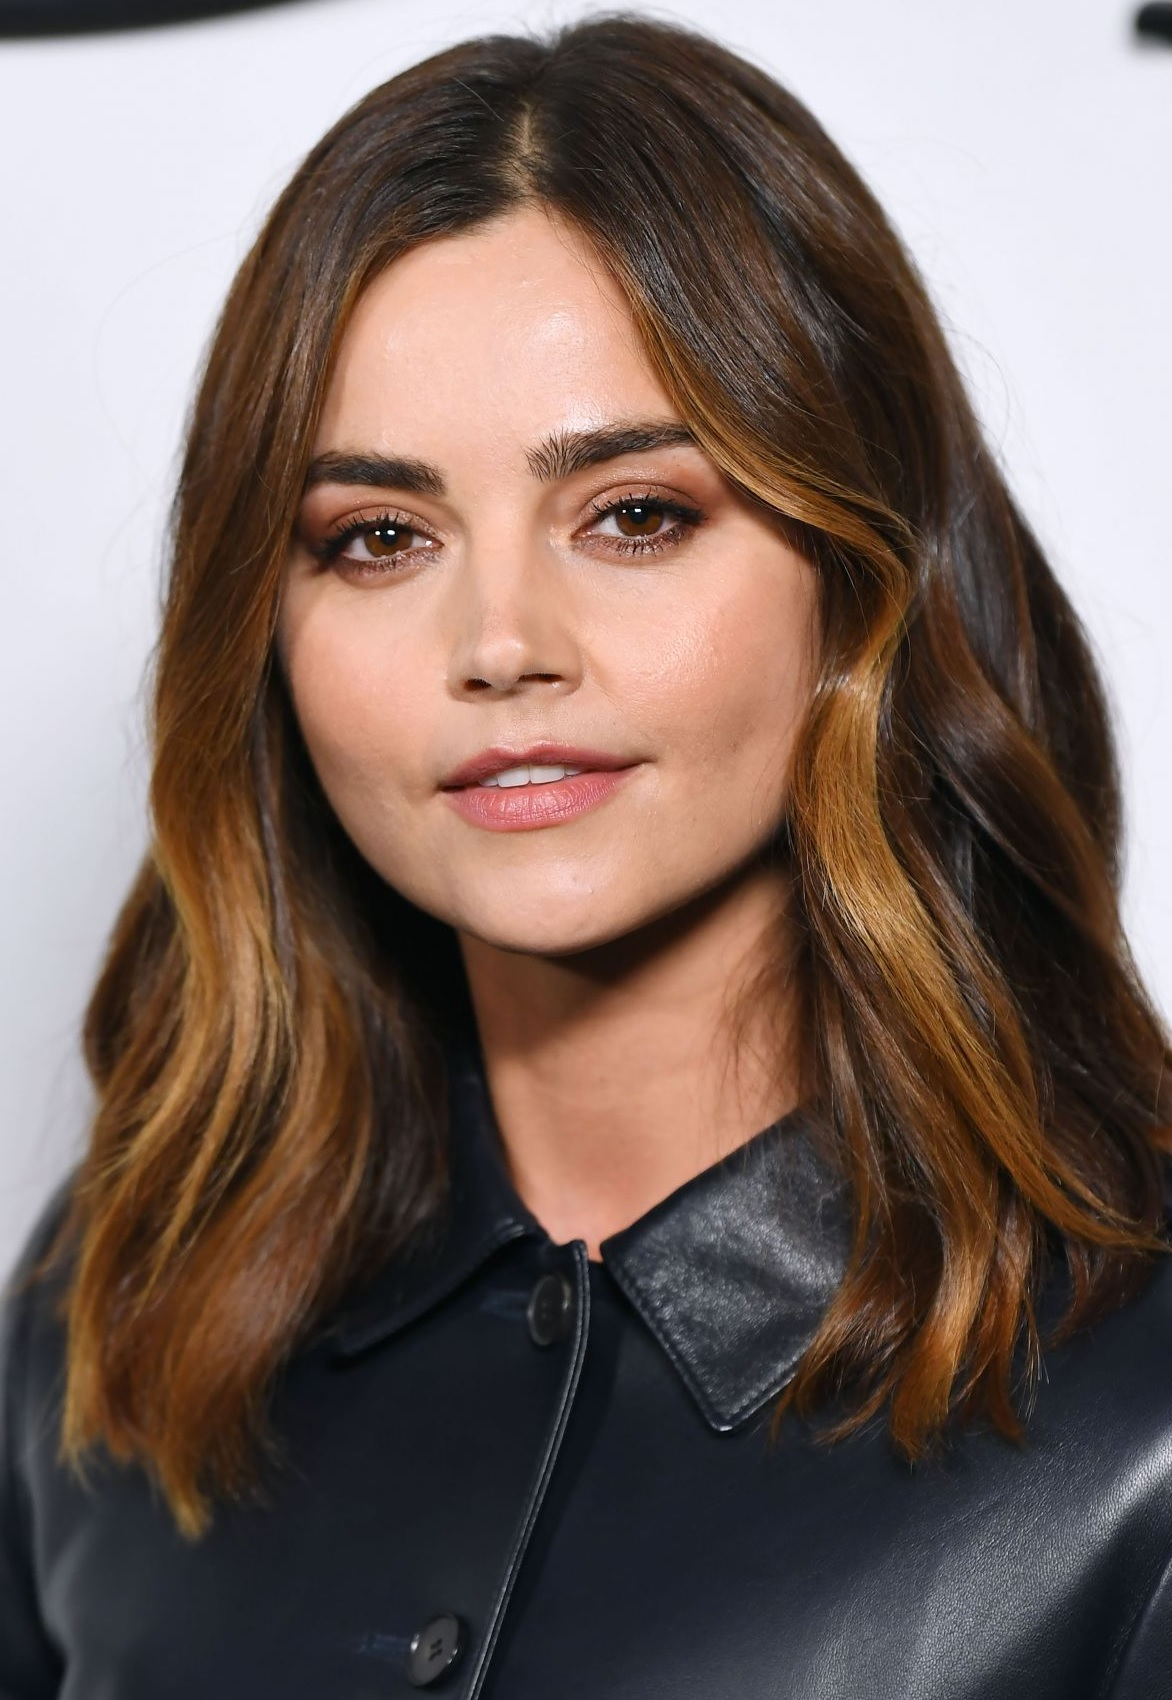 jenna coleman iconsjenna coleman gif, jenna coleman victoria, jenna coleman gallery, jenna coleman and richard madden, jenna coleman and tom hughes, jenna coleman tumblr, jenna coleman png, jenna coleman gif hunt, jenna coleman instagram, jenna coleman doctor who, jenna coleman style, jenna coleman icons, jenna coleman facebook, jenna coleman and matt smith, jenna coleman daily, jenna coleman height cm, jenna coleman twitter, jenna coleman 2017, jenna coleman fan, jenna coleman and prince harry